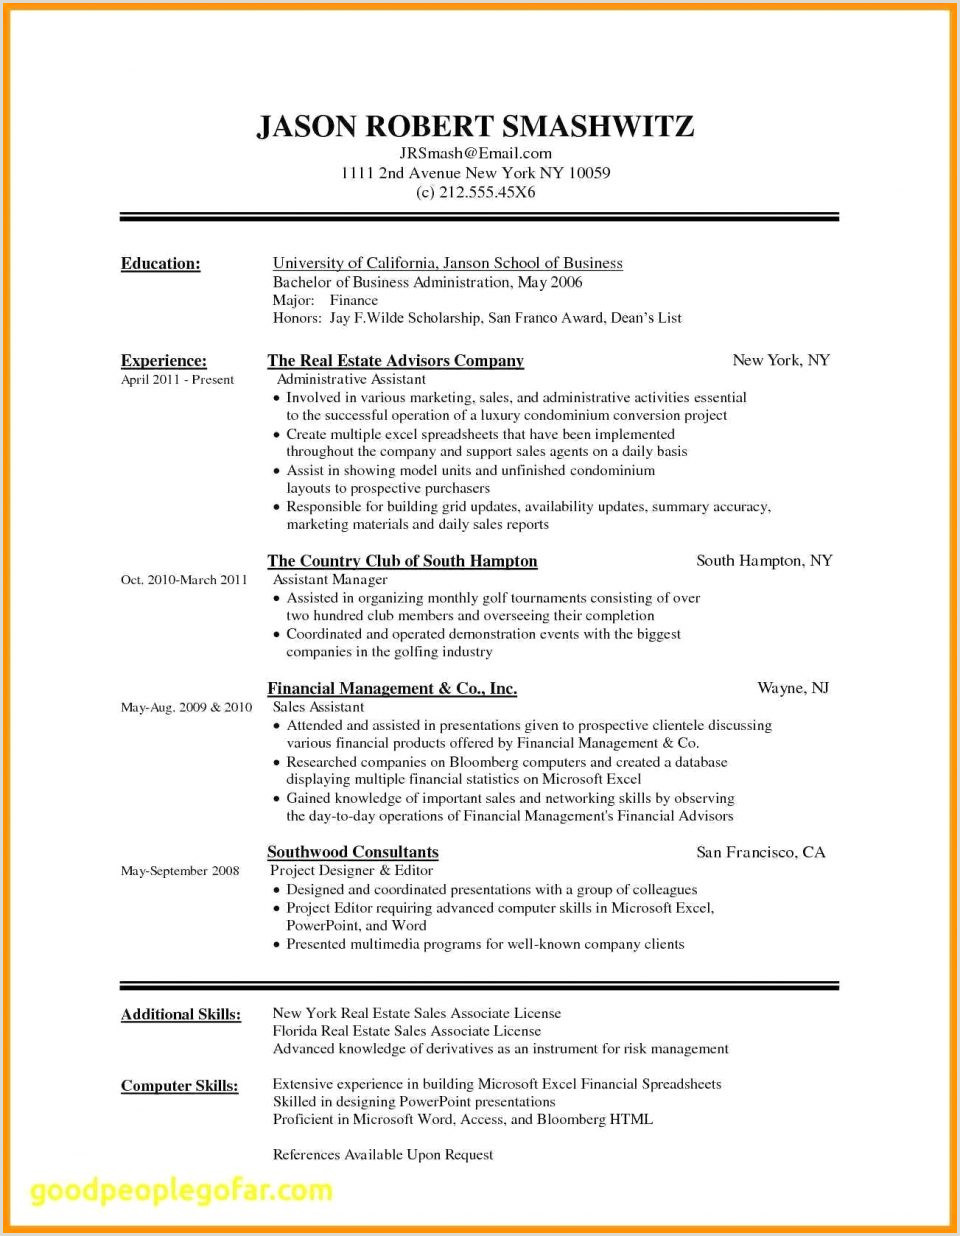 Curriculum Vitae Samples Word Nurse Resume Sample Monster Cv Tem